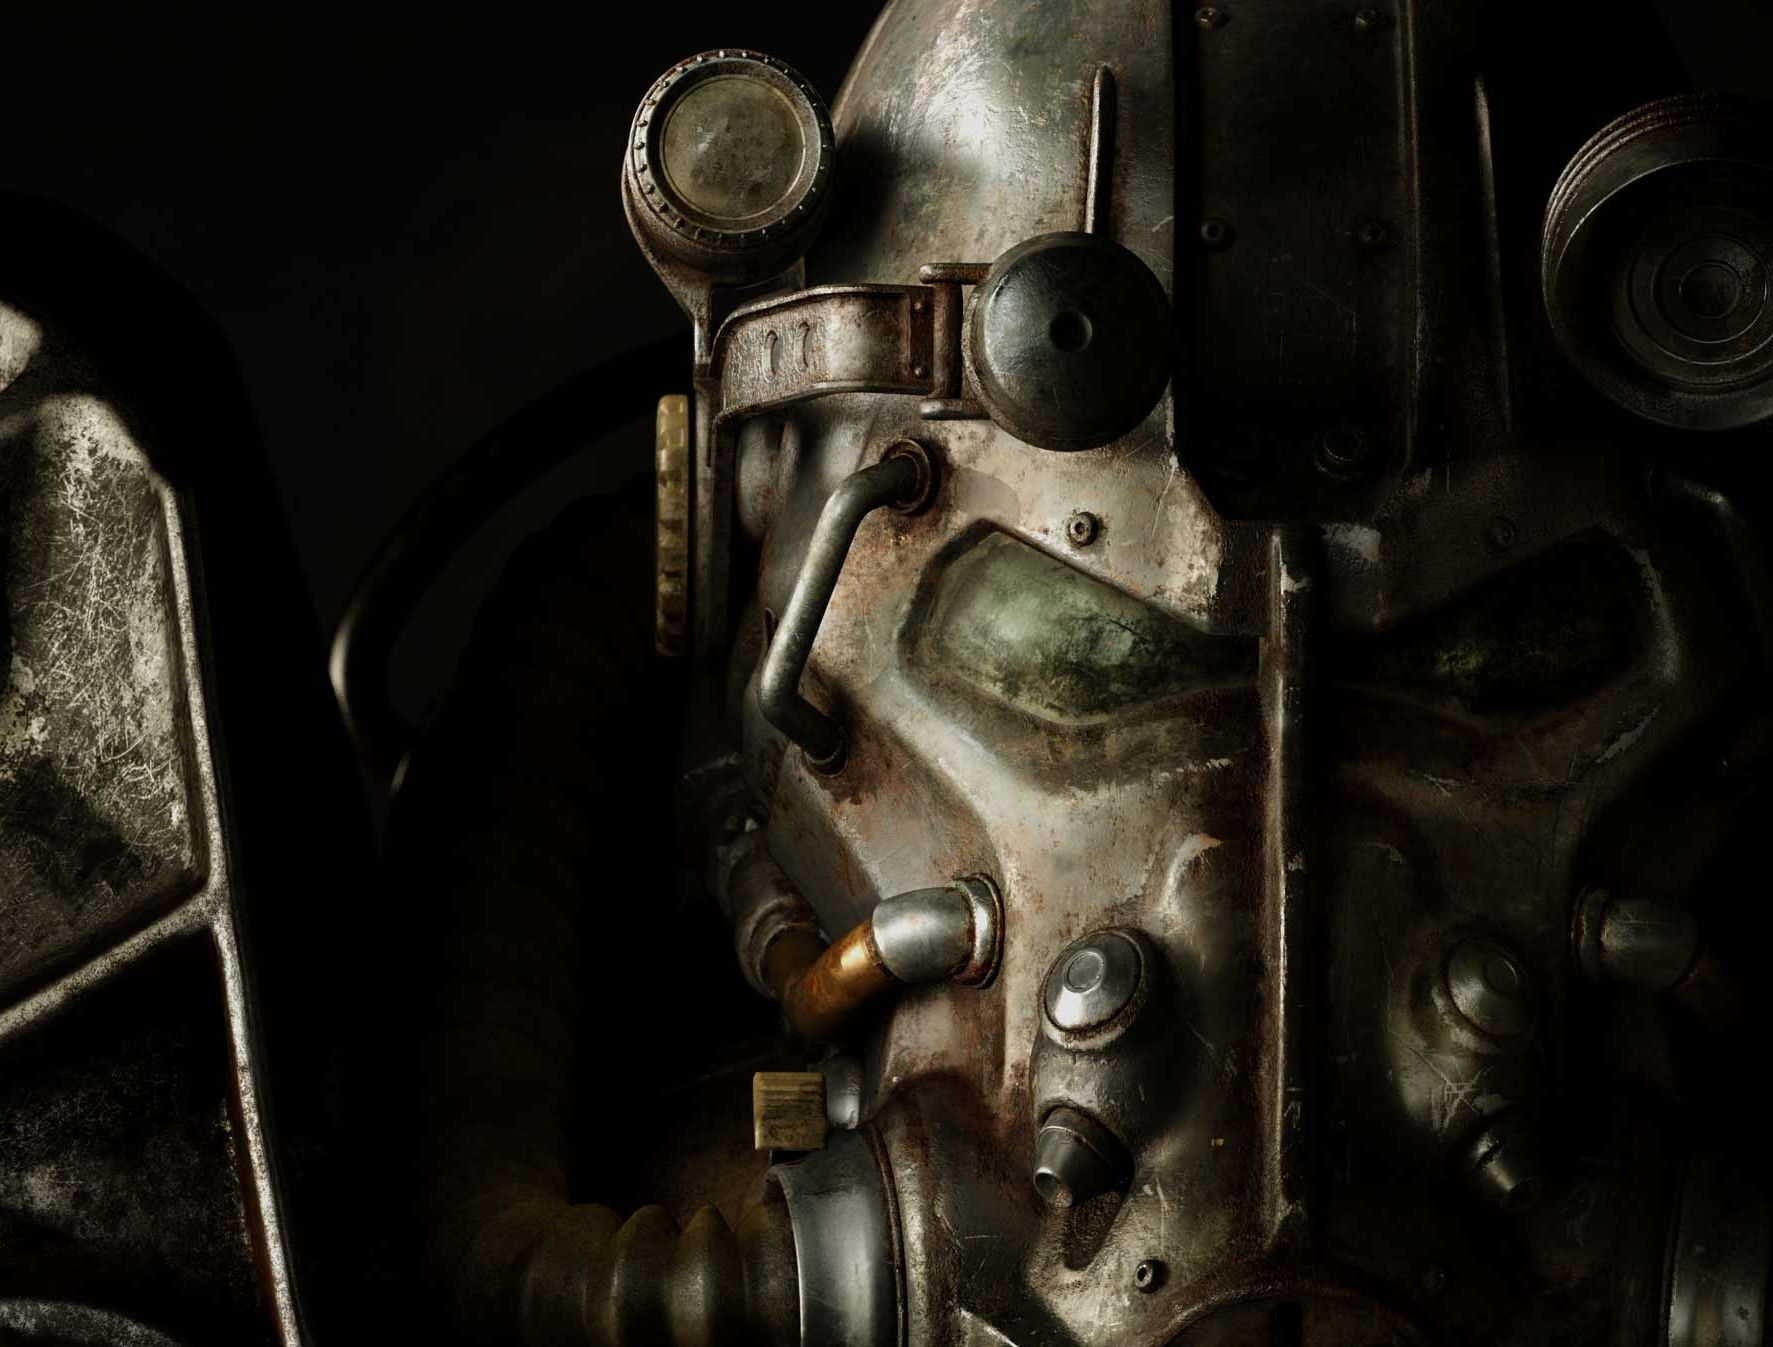 Fallout 4 Will Have A Season Pass First DLC Early Next